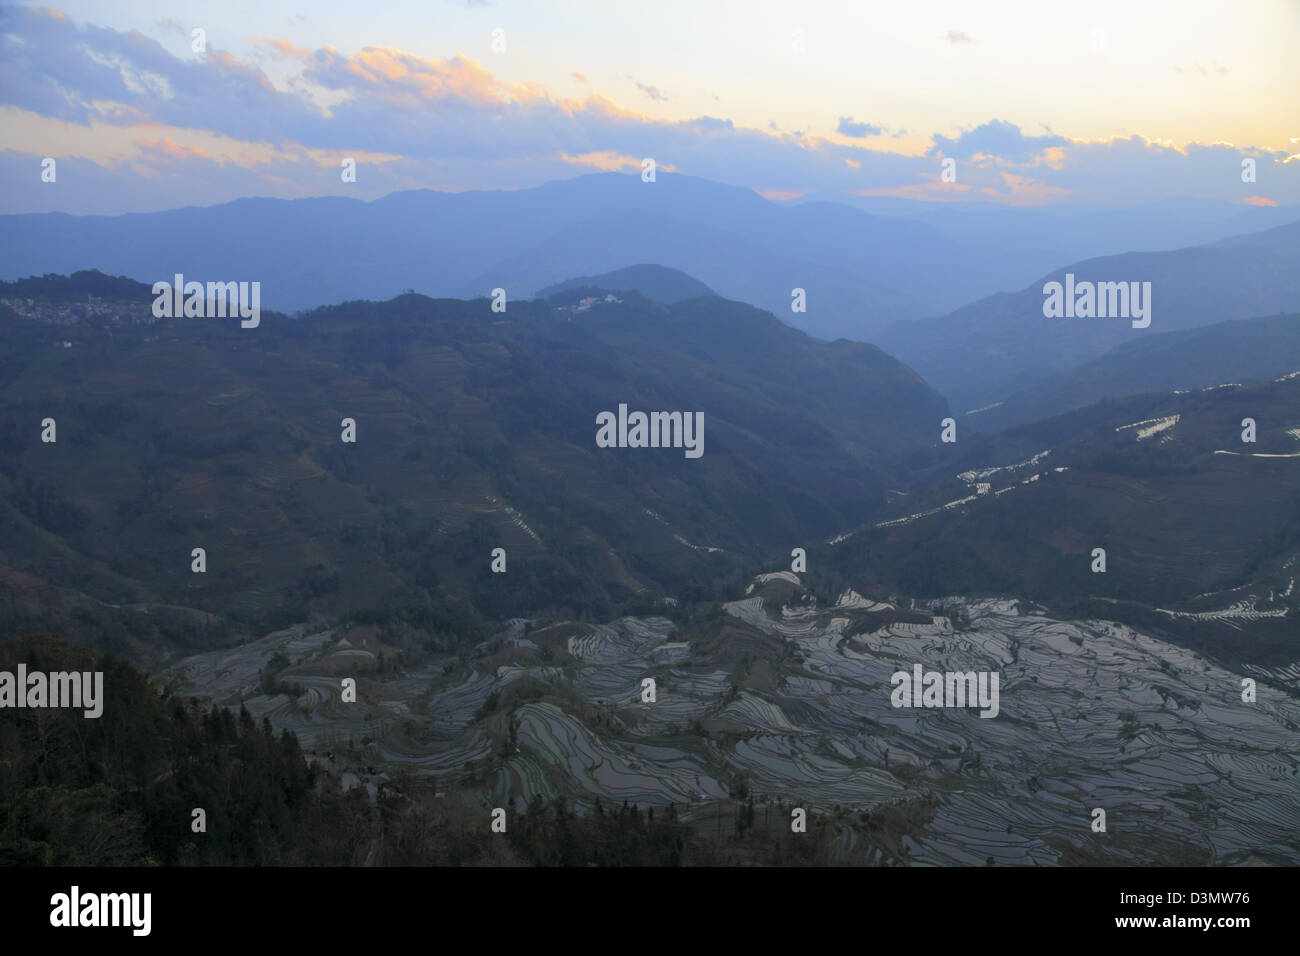 China, Yunnan, Yuanyang, Laohuzui, rice terraces, - Stock Image